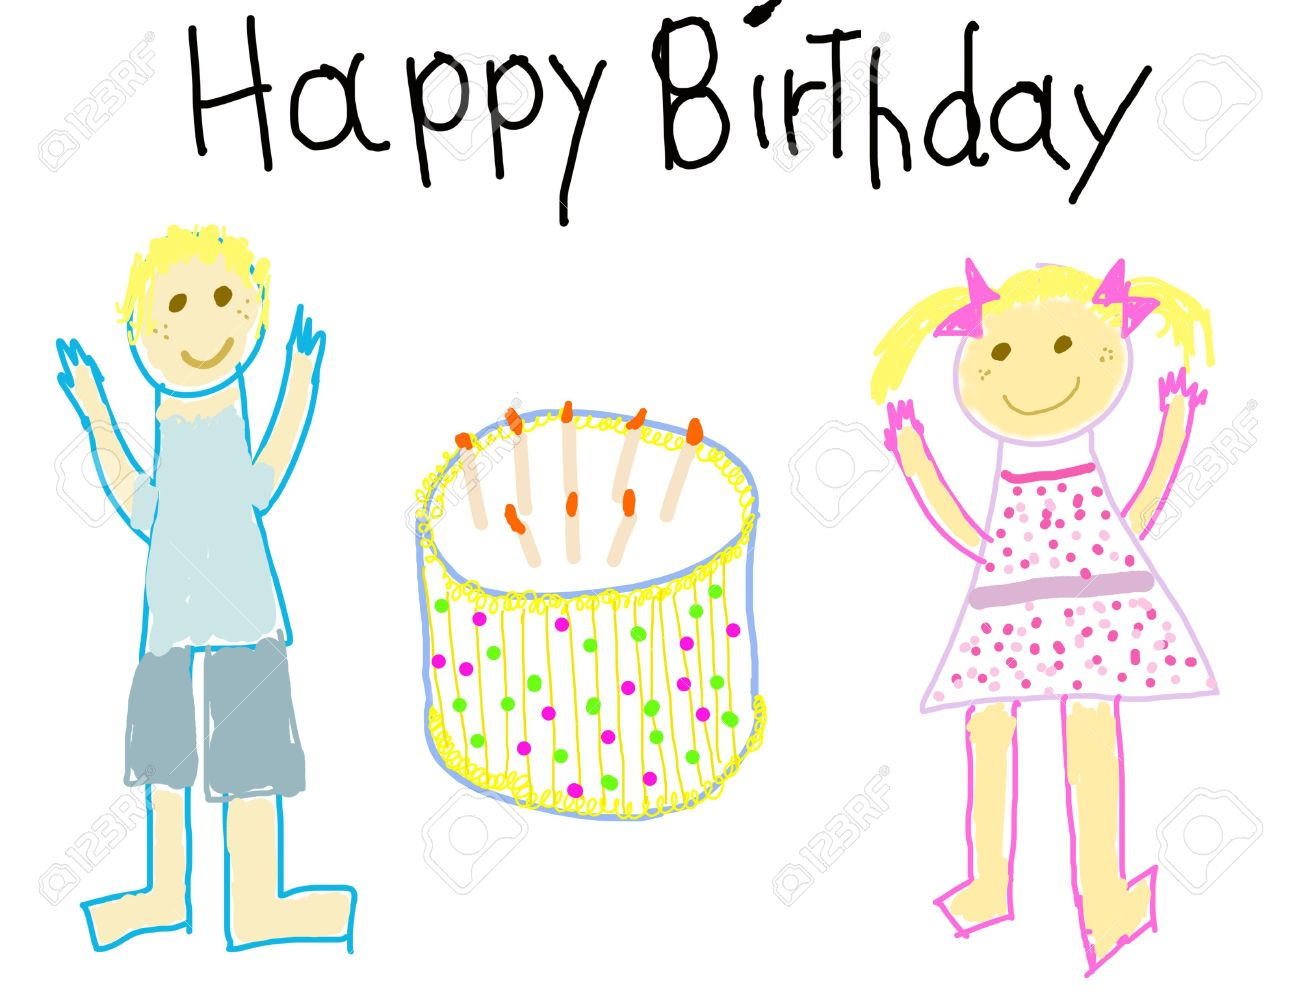 happy birthday drawing for kids ; 3209147-child-like-drawing-of-a-boy-girl-with-happy-birthday